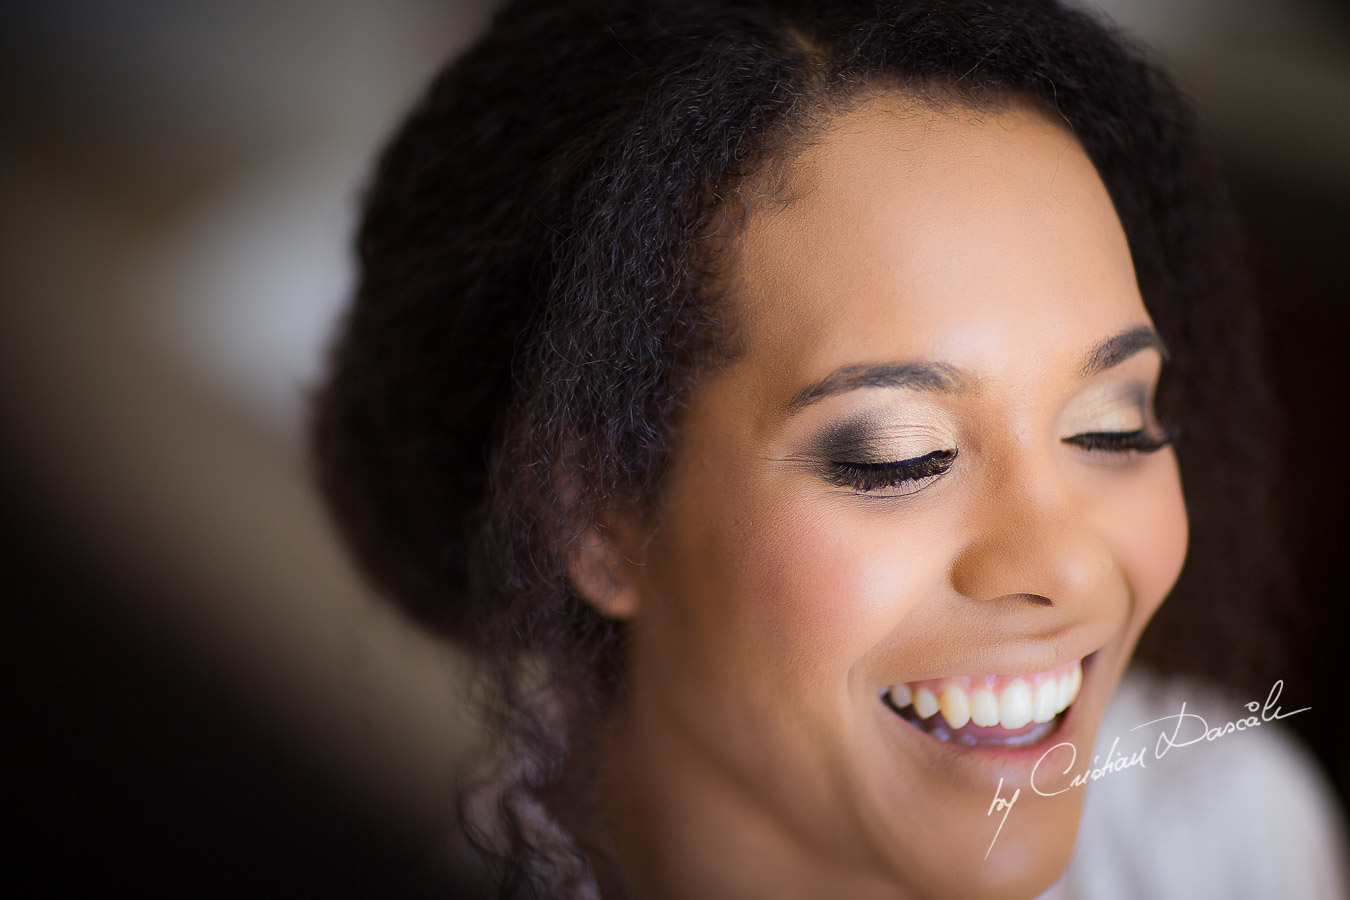 Beautiful smile of the bride Joanna captured at her wedding at Minthis Hills in Cyprus, by Cristian Dascalu.